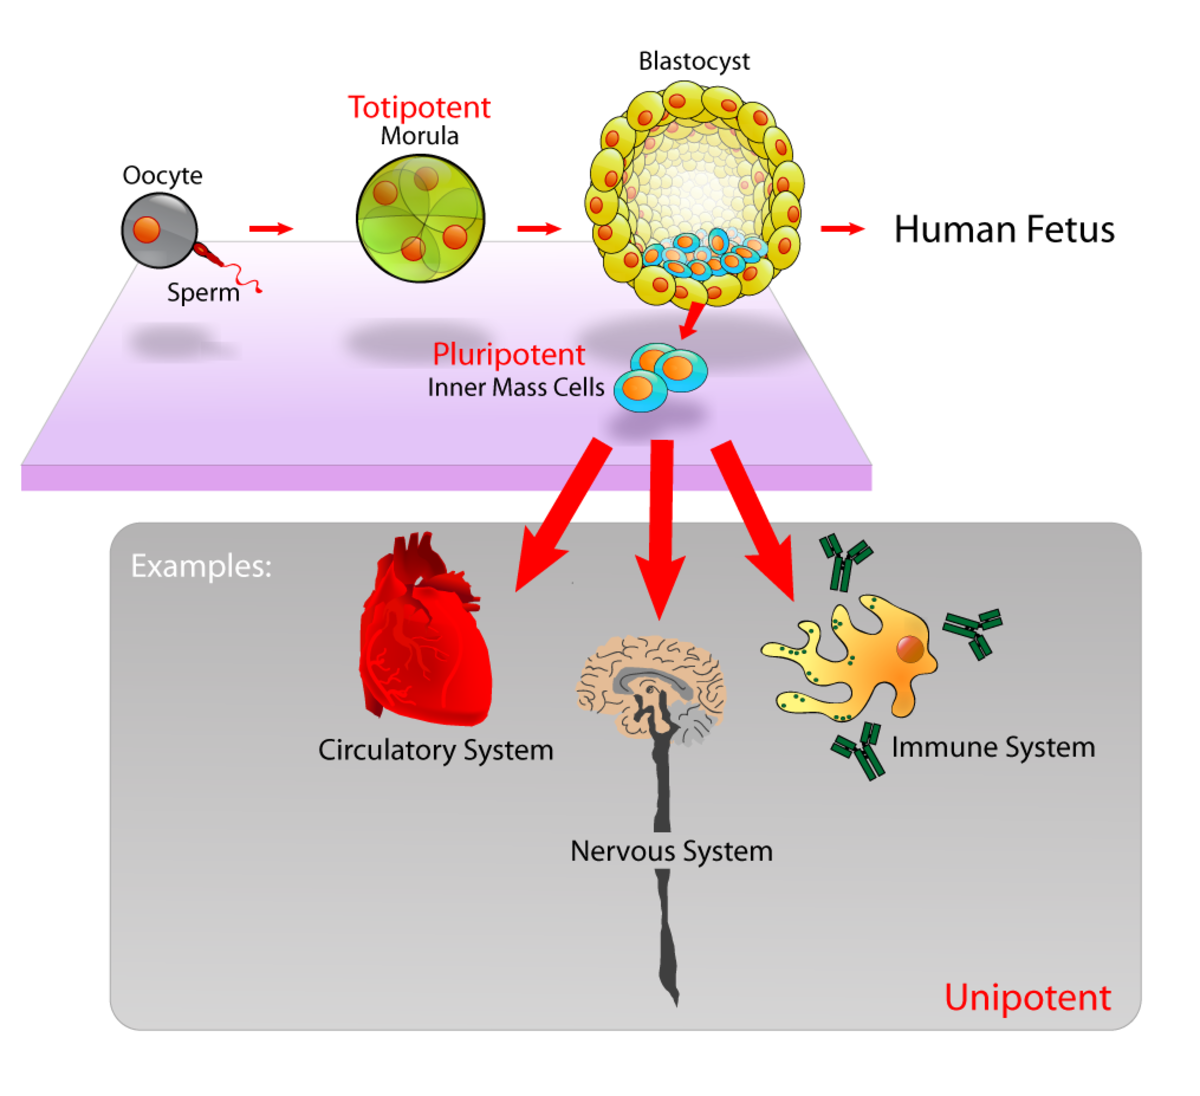 The blastocyst and its pluripotent stem cells